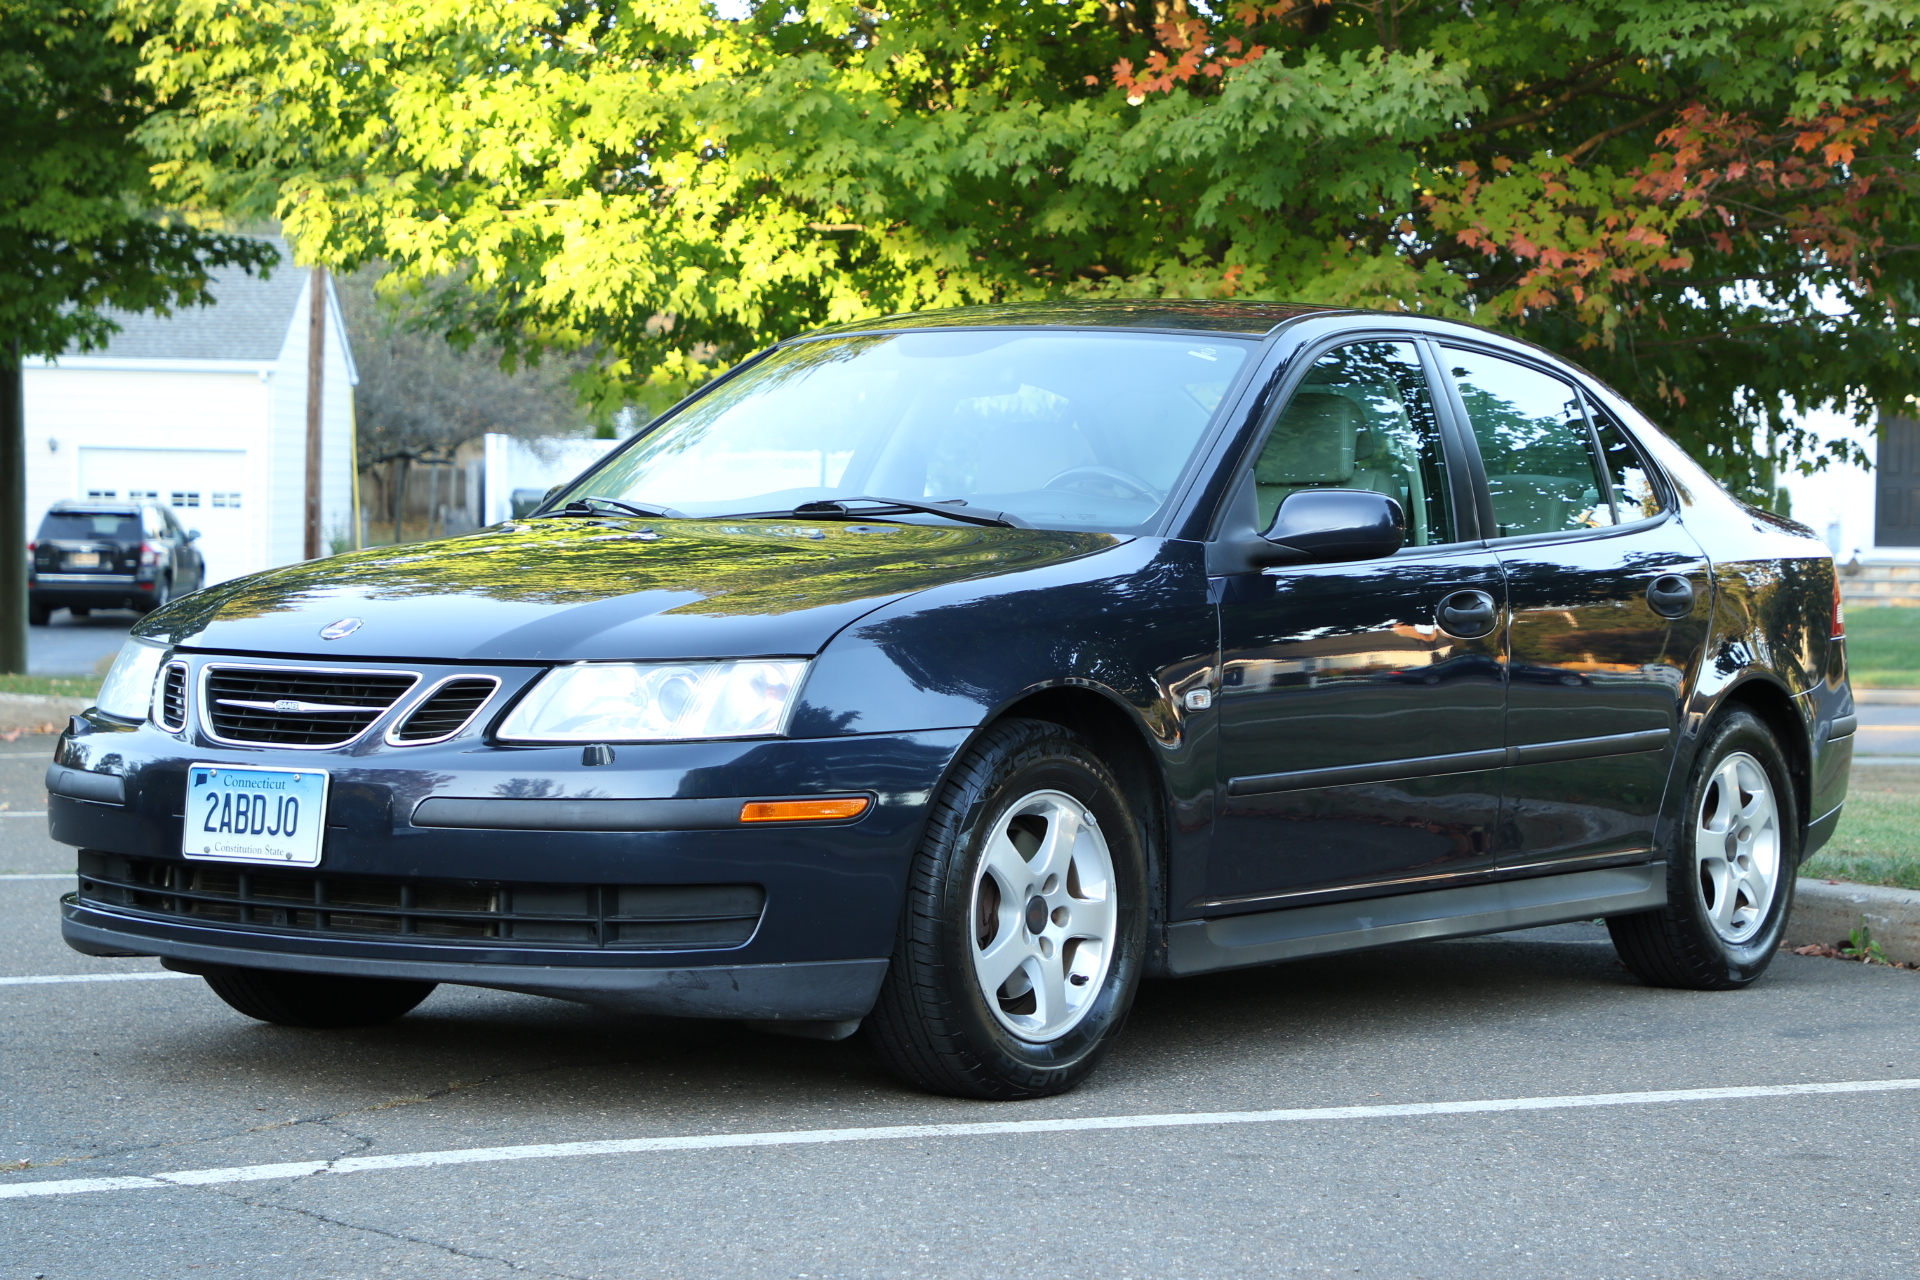 2004 saab 9 3 turbo 4 cylinder automatic 4 door two owner. Black Bedroom Furniture Sets. Home Design Ideas